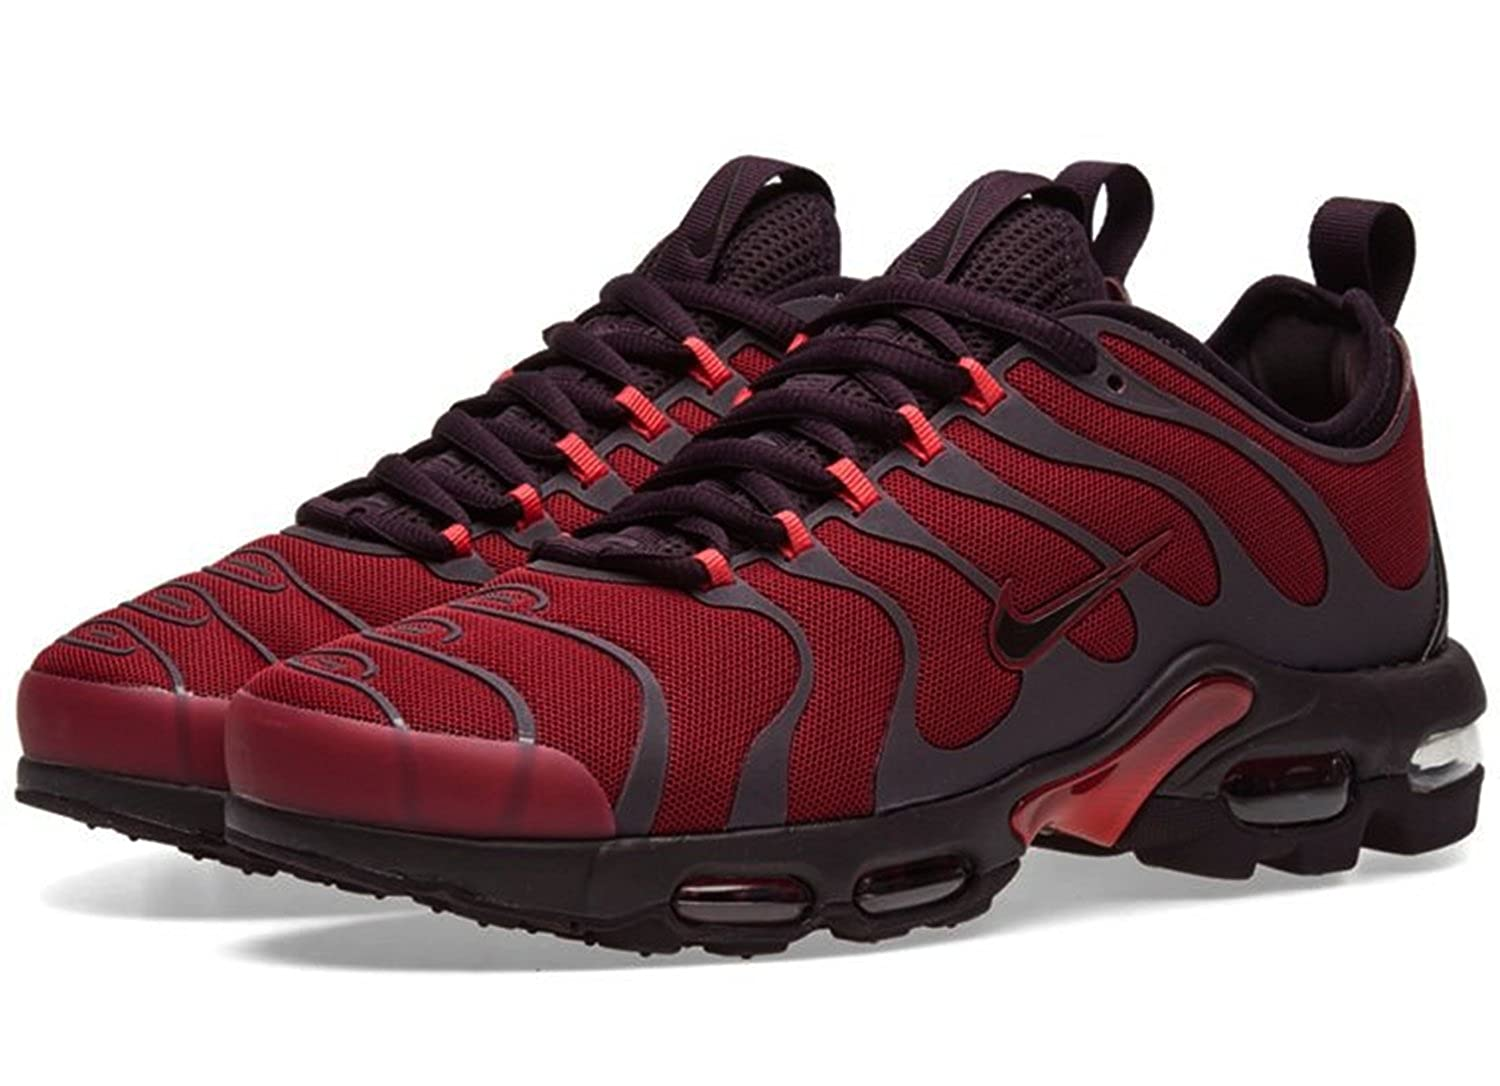 more photos aaa6b b5684 Nike Air Max Plus TN Ultra Lifestyle Casual Sneakers Noble red Port Wine  New 898015-601 - 14  Amazon.co.uk  Shoes   Bags